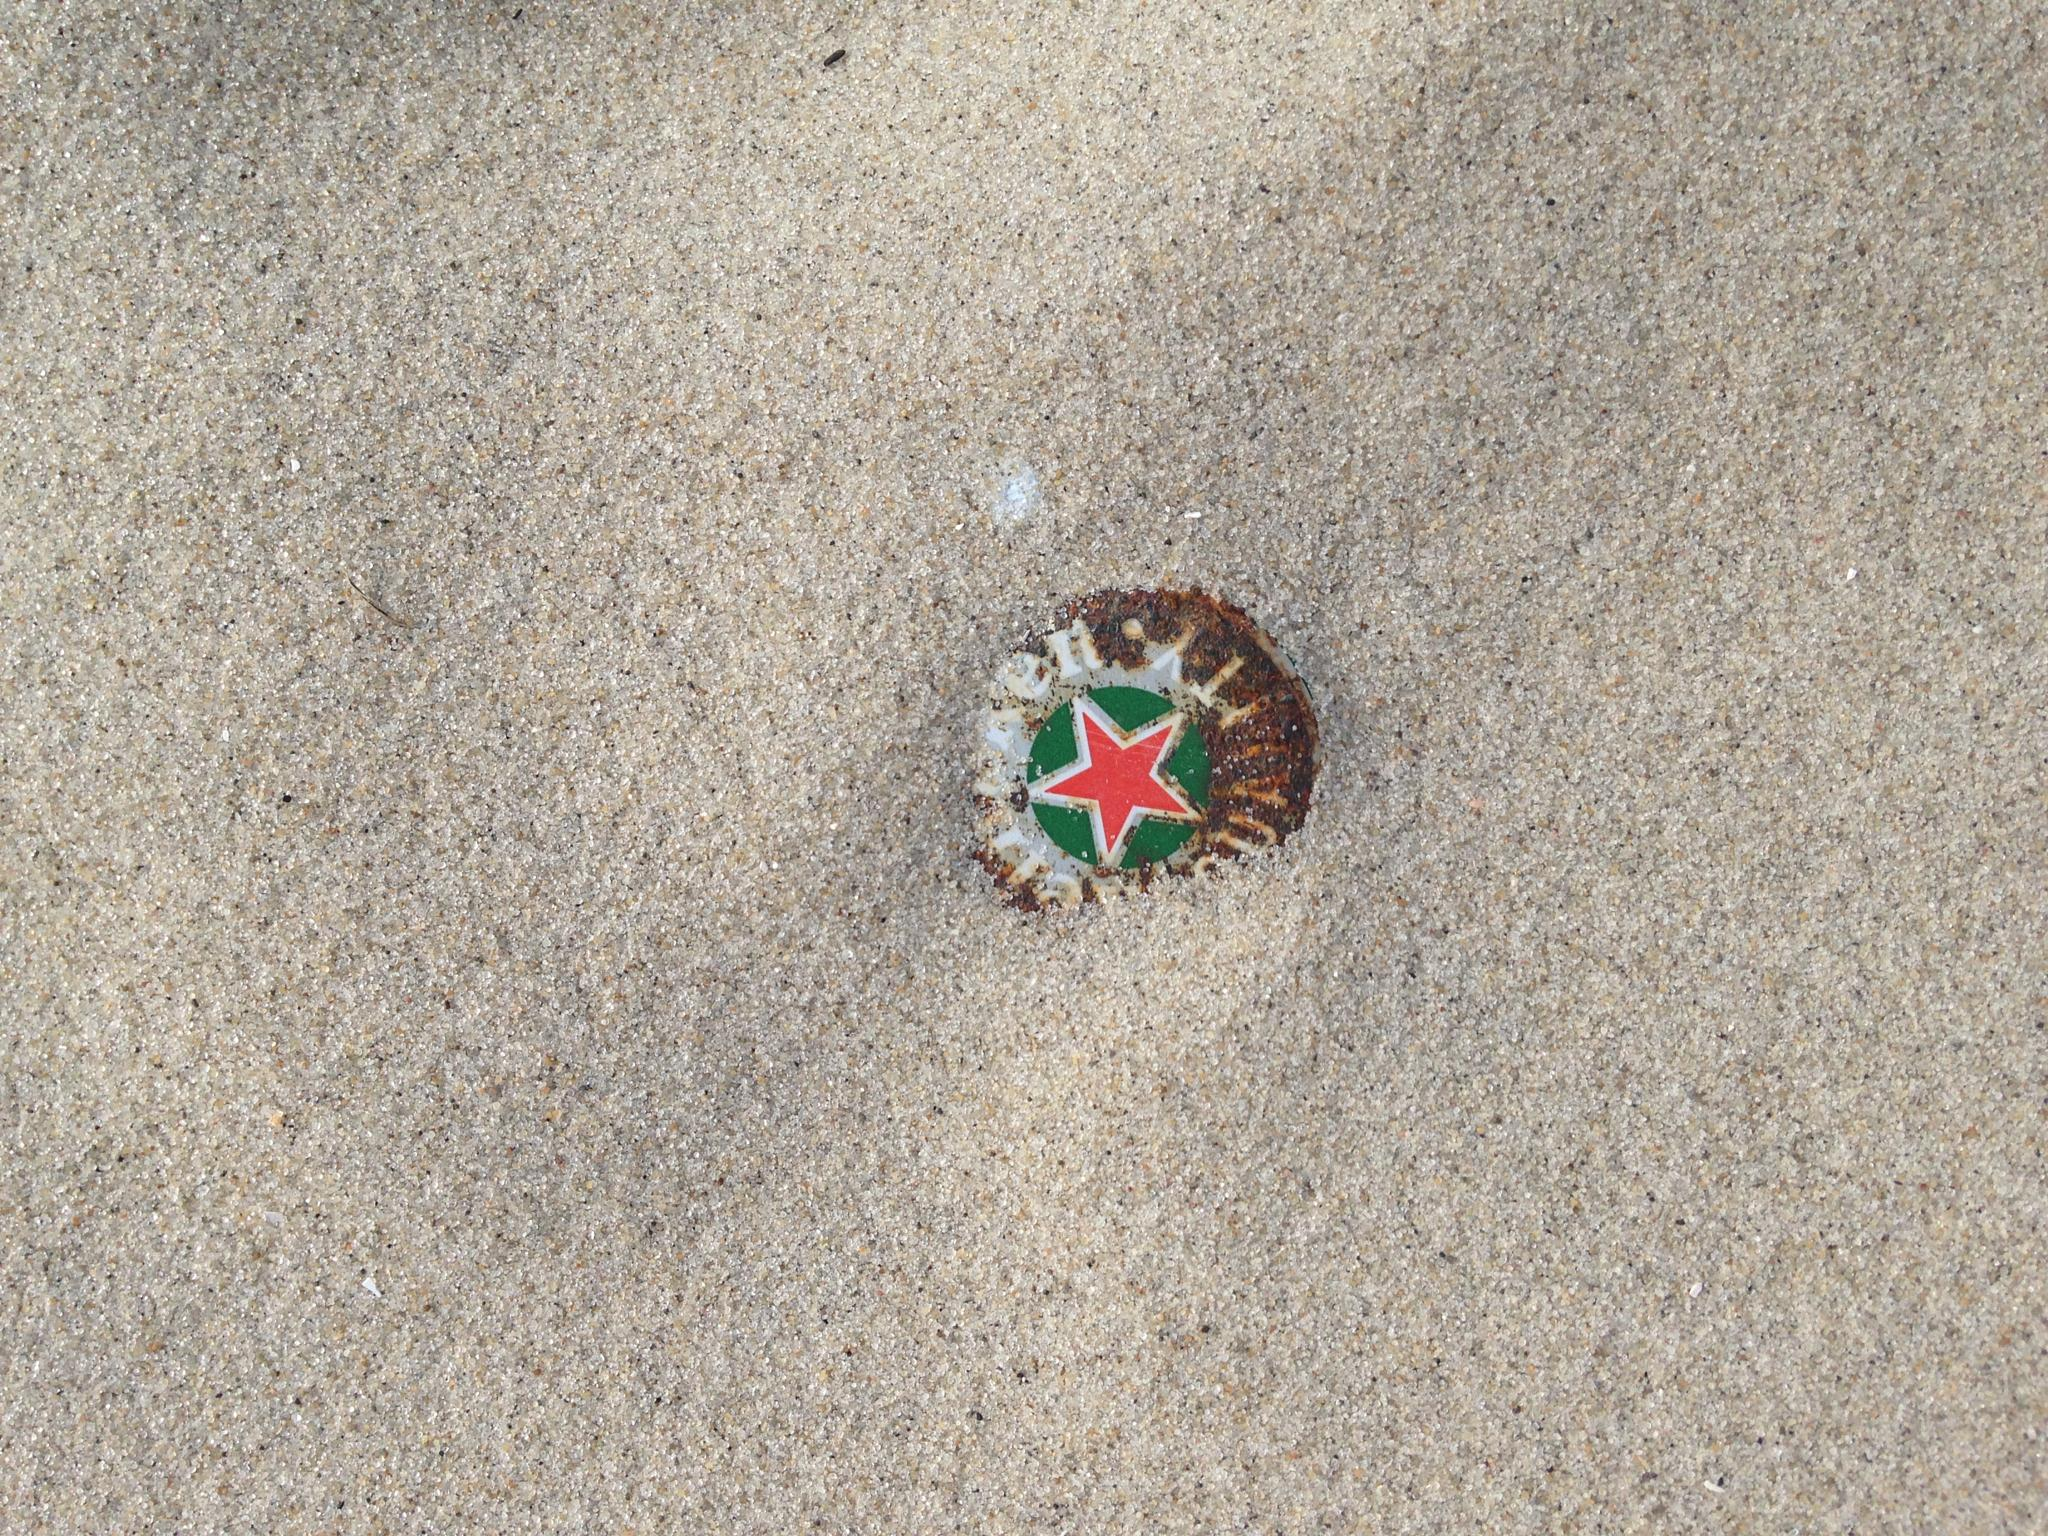 beer and beach by marianne.post.376